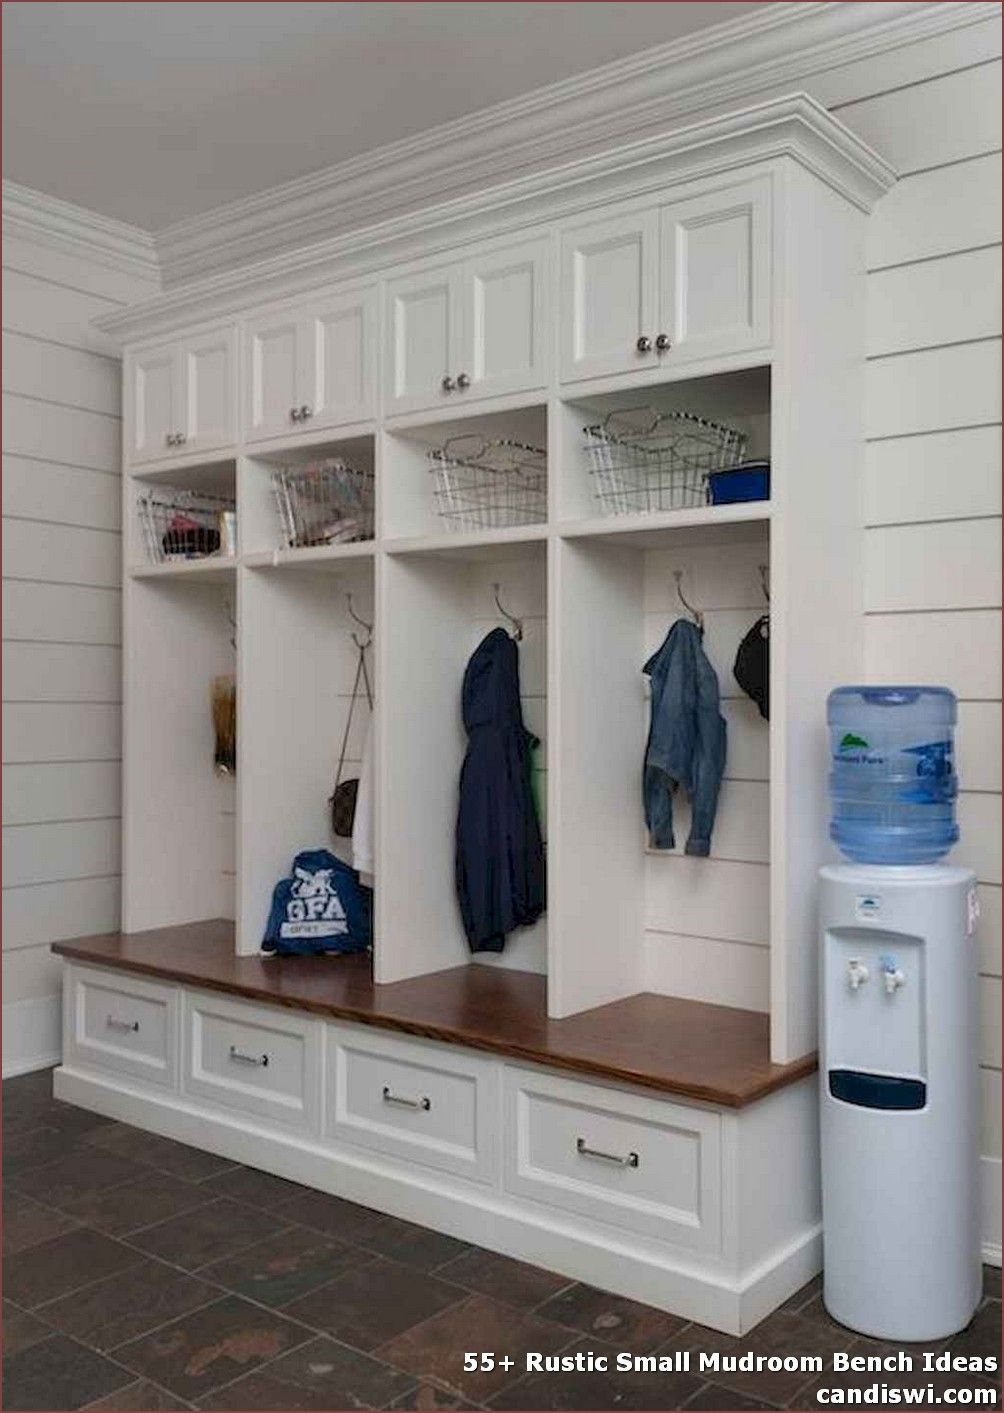 55 Rustic Small Mudroom Bench Ideas Even A Shallow House Just Like The One Pictured Right Here Can Operate As A Mudroom With In Mudroom Ideas In 2019